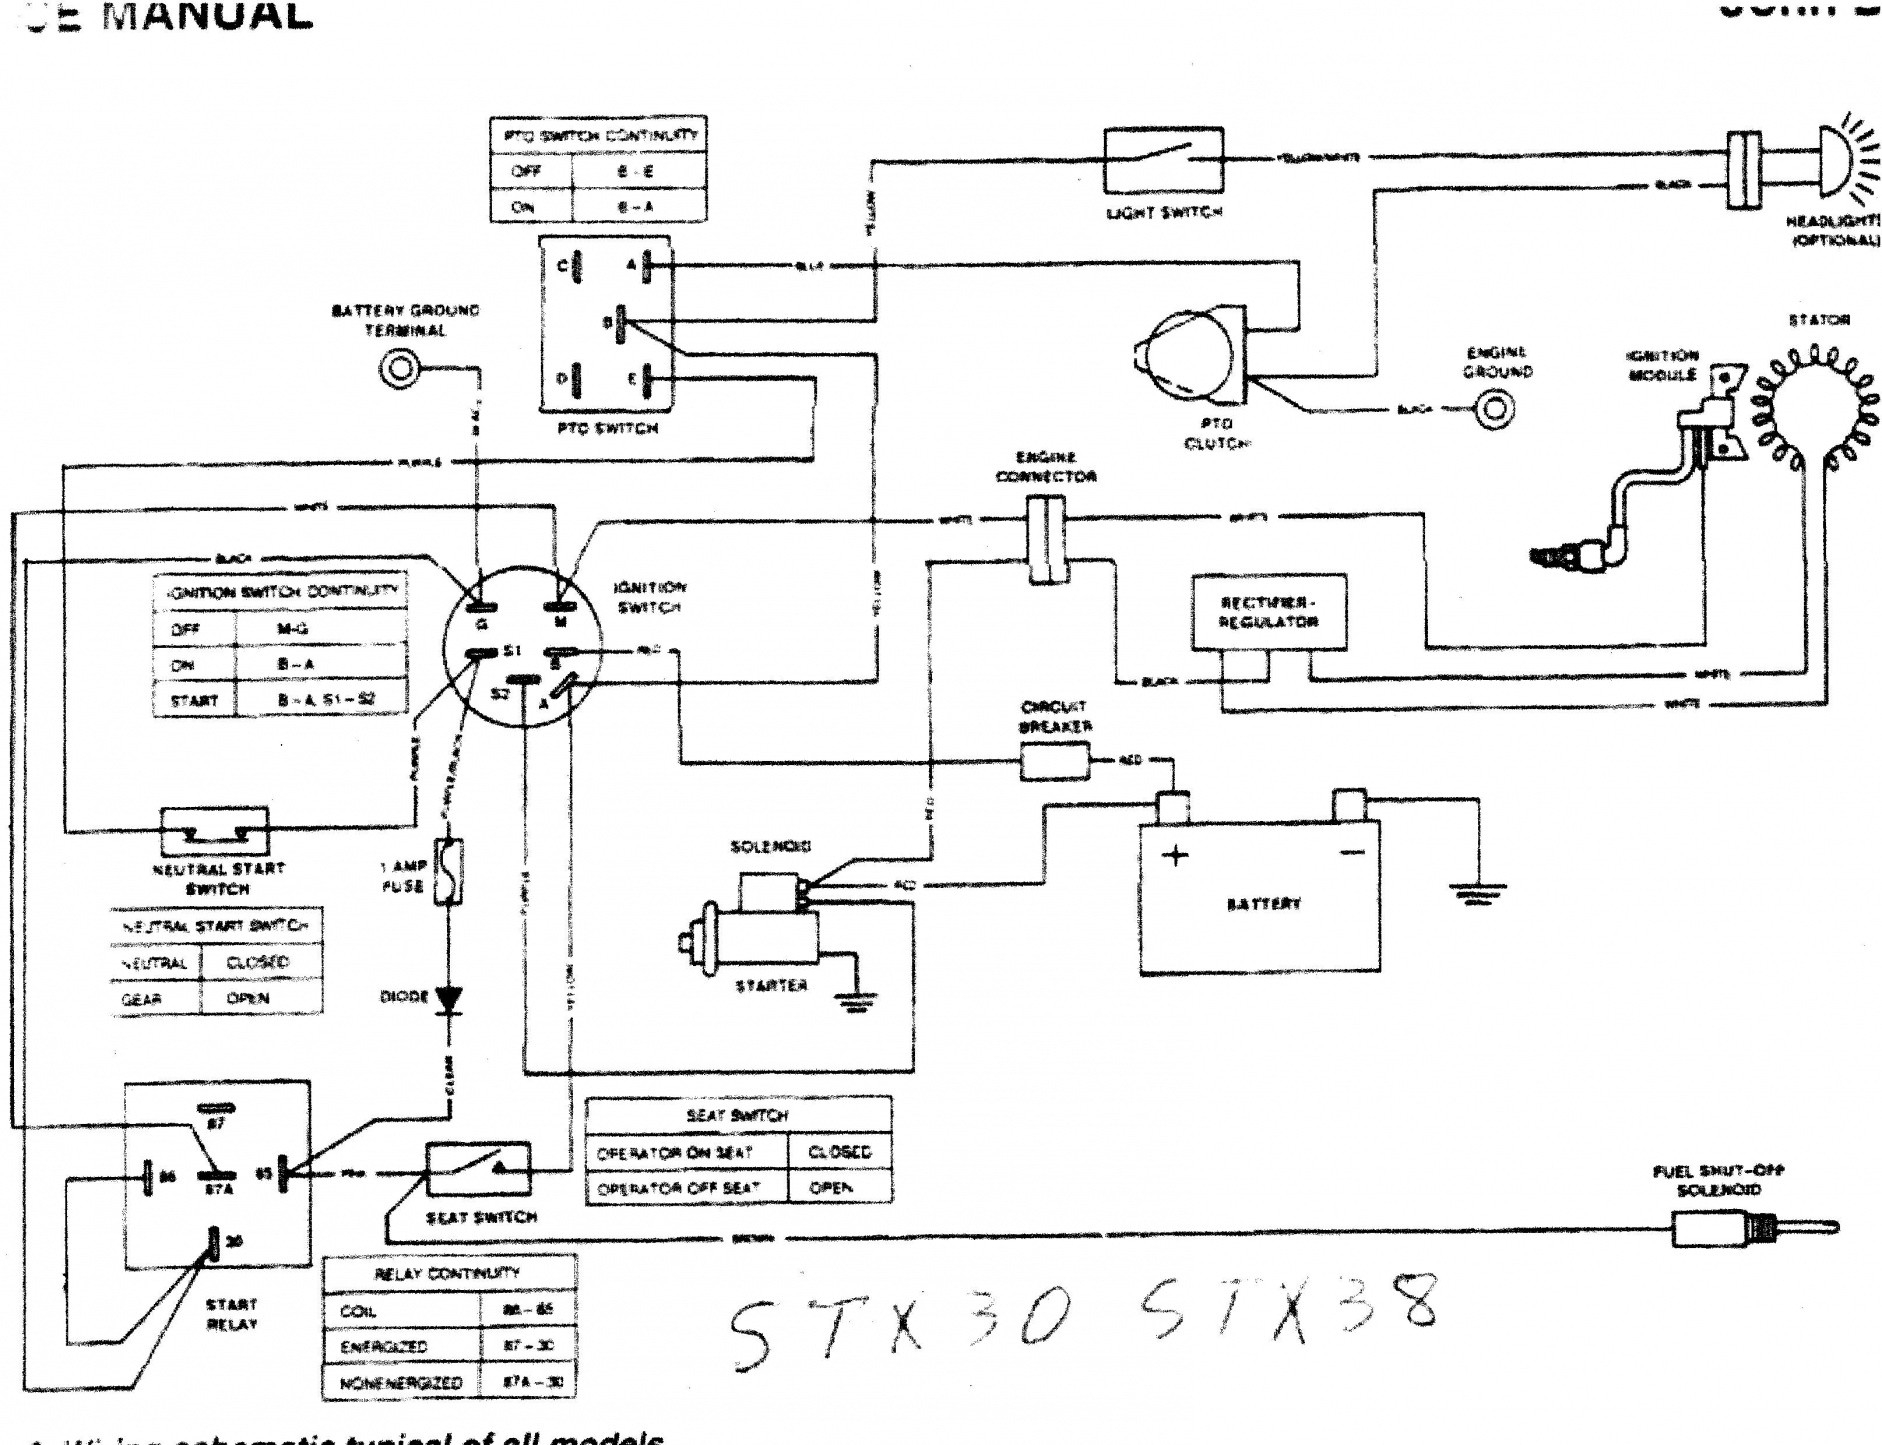 john deere 40 wiring harness wiring diagram 4020 john deere wiring harness diagram john deere wiring harness diagram #3